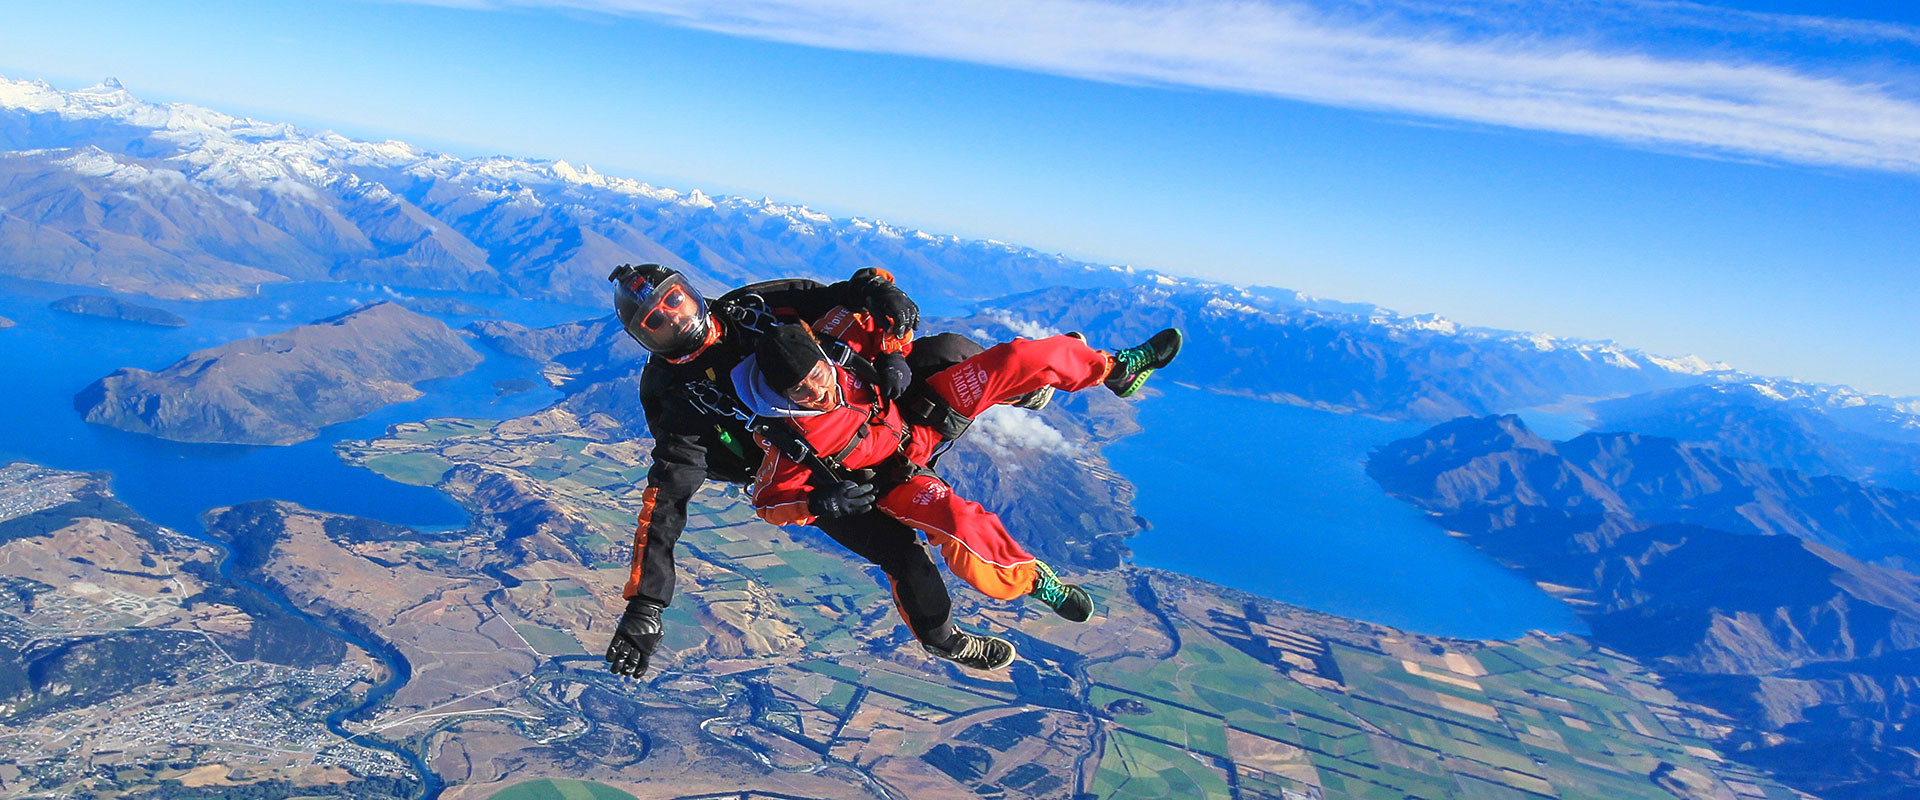 Skydive Wanaka | Skydiving NZ 15,000ft in the Sky